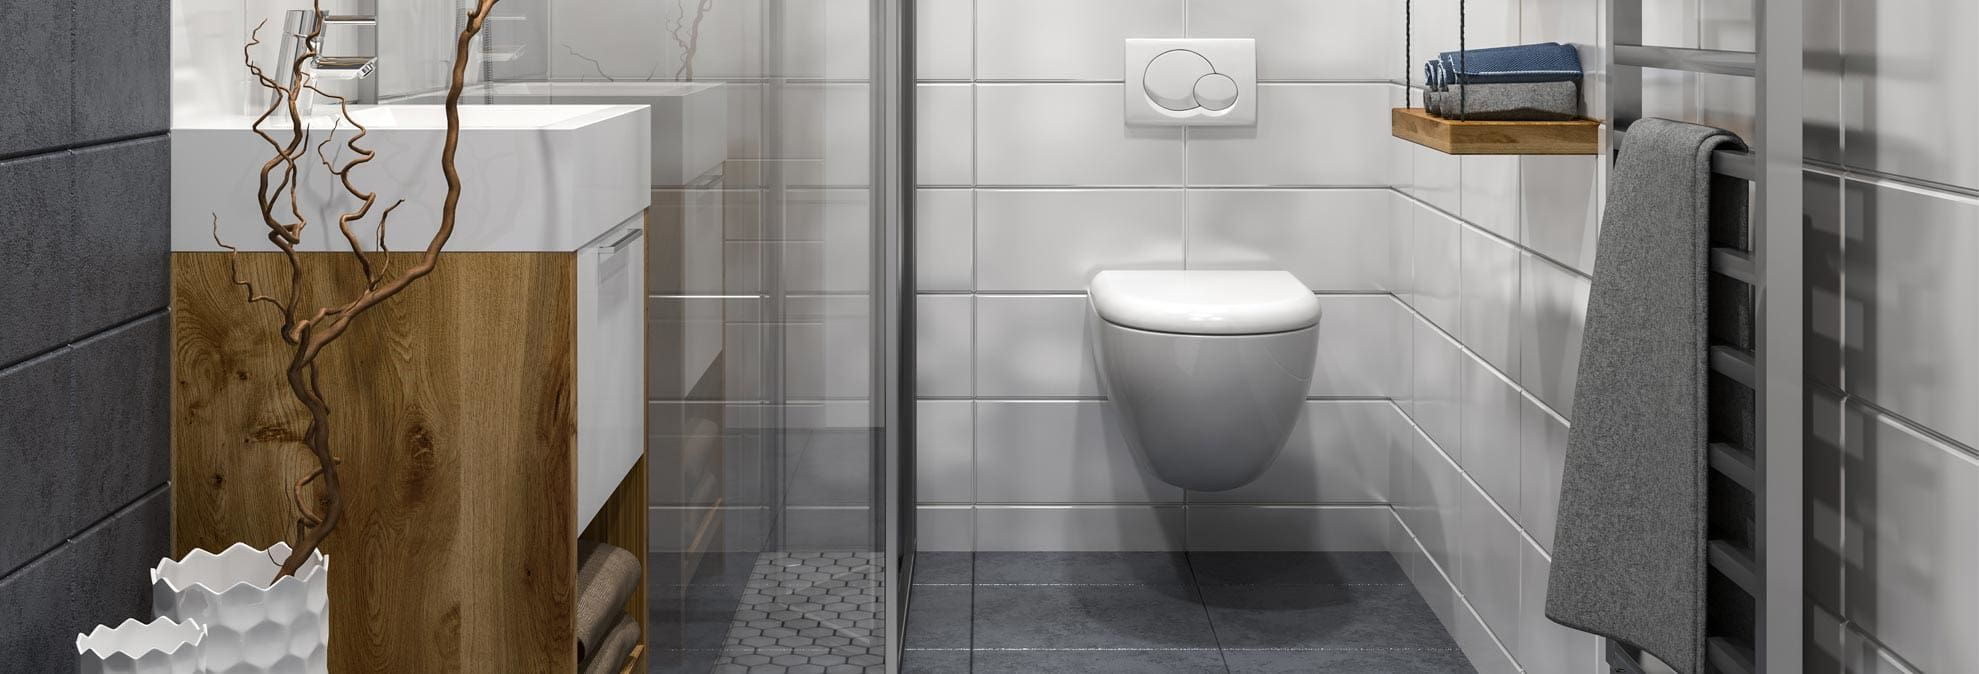 The Pros And Cons Of Wall Mounted Toilets Wall Mounted Toilet